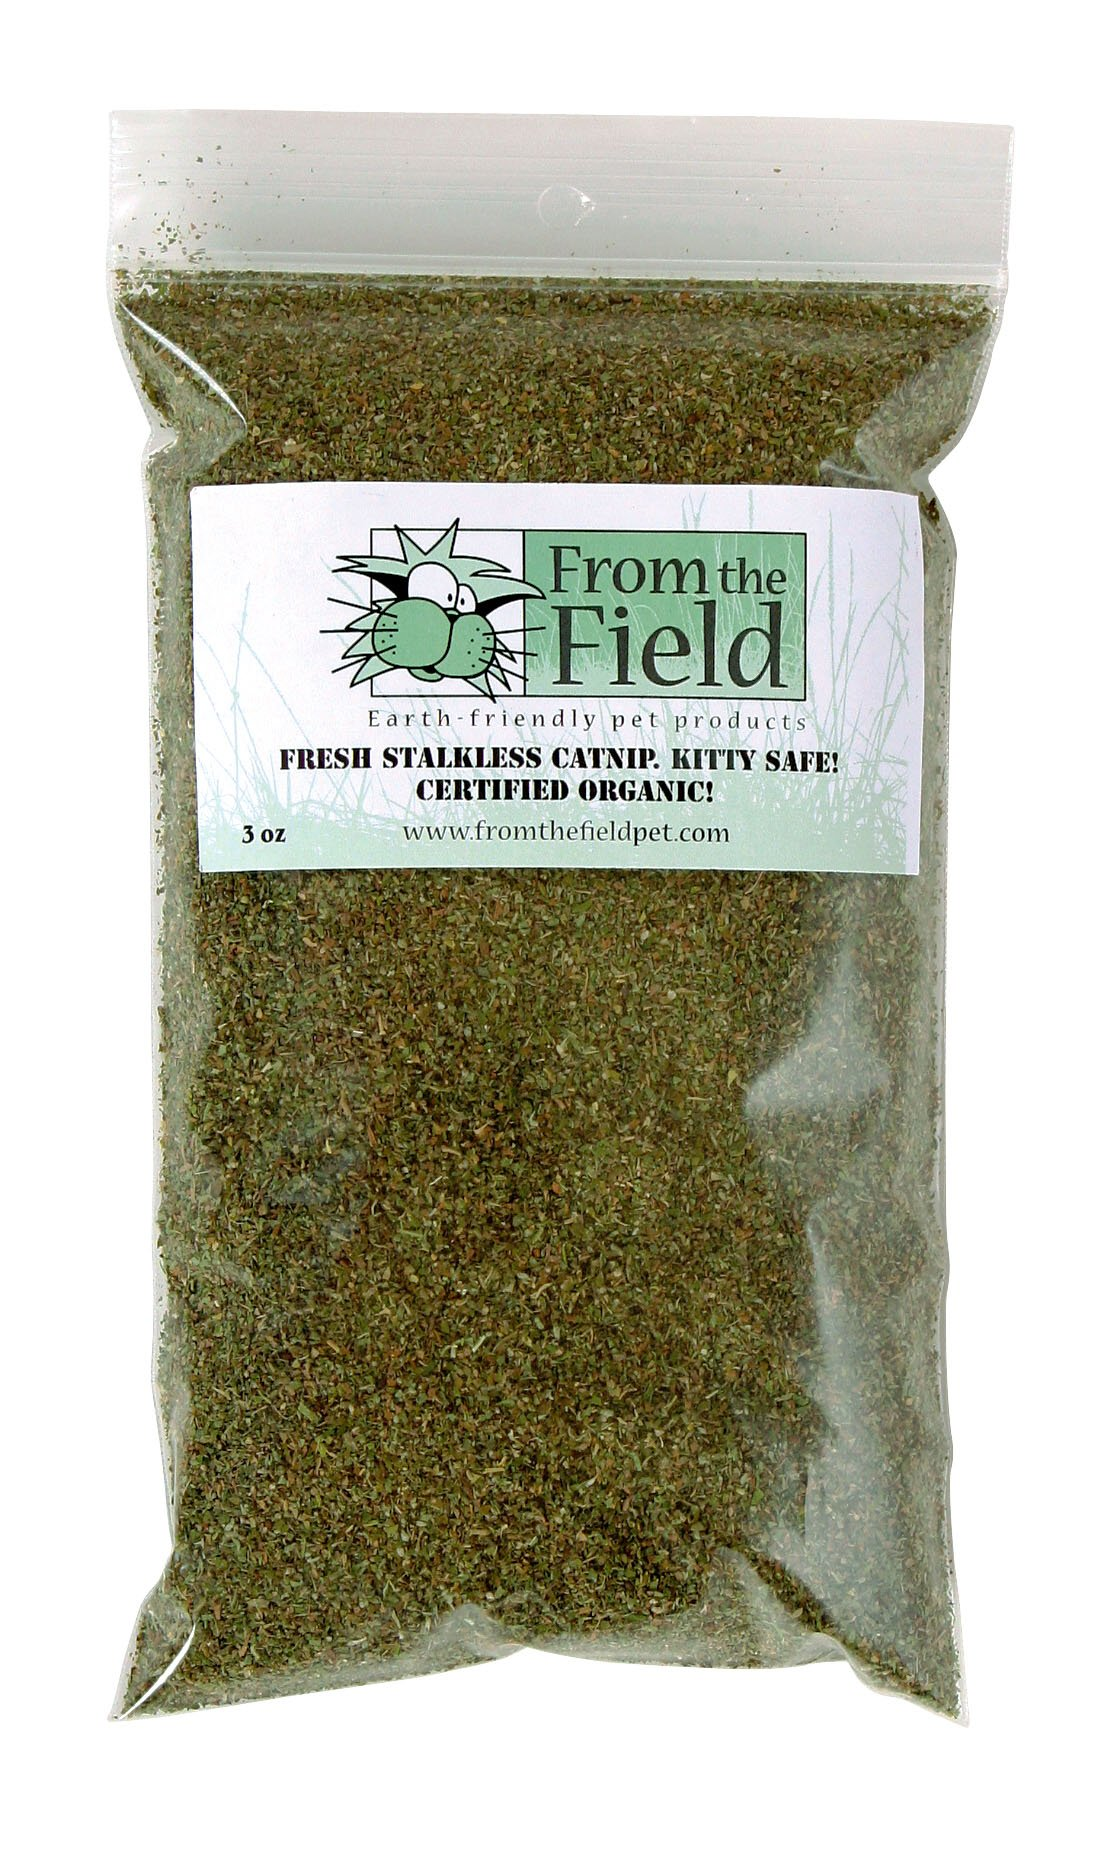 From The Field 3-Ounce Catnip Kitty Safe Stalkless Bag